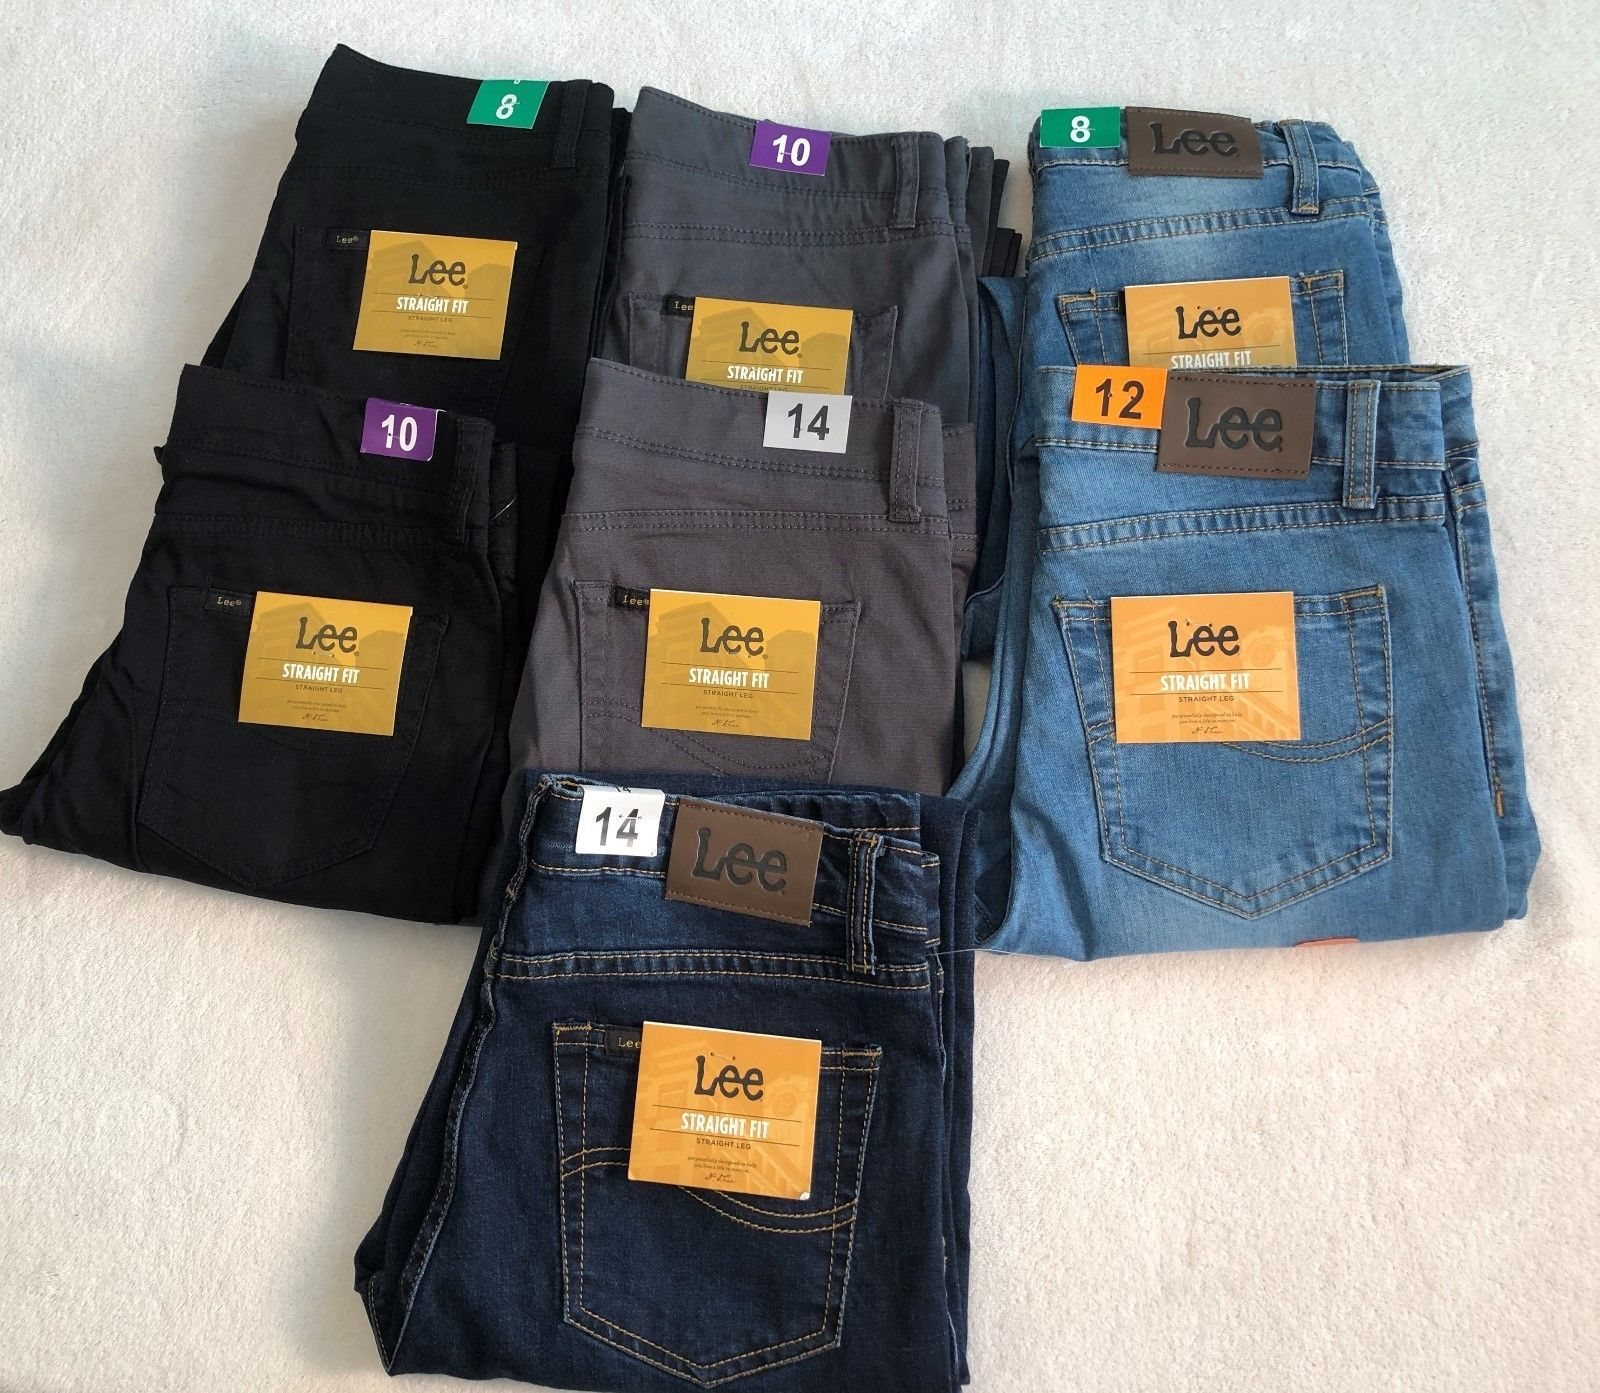 276ed610 Jeans 77475: New Lee Boy S Premium Select Straight Fit Straight Leg Jeans,  Various Sz Colors -> BUY IT NOW ONLY: $15.75 on #eBay #jeans #premium # select ...